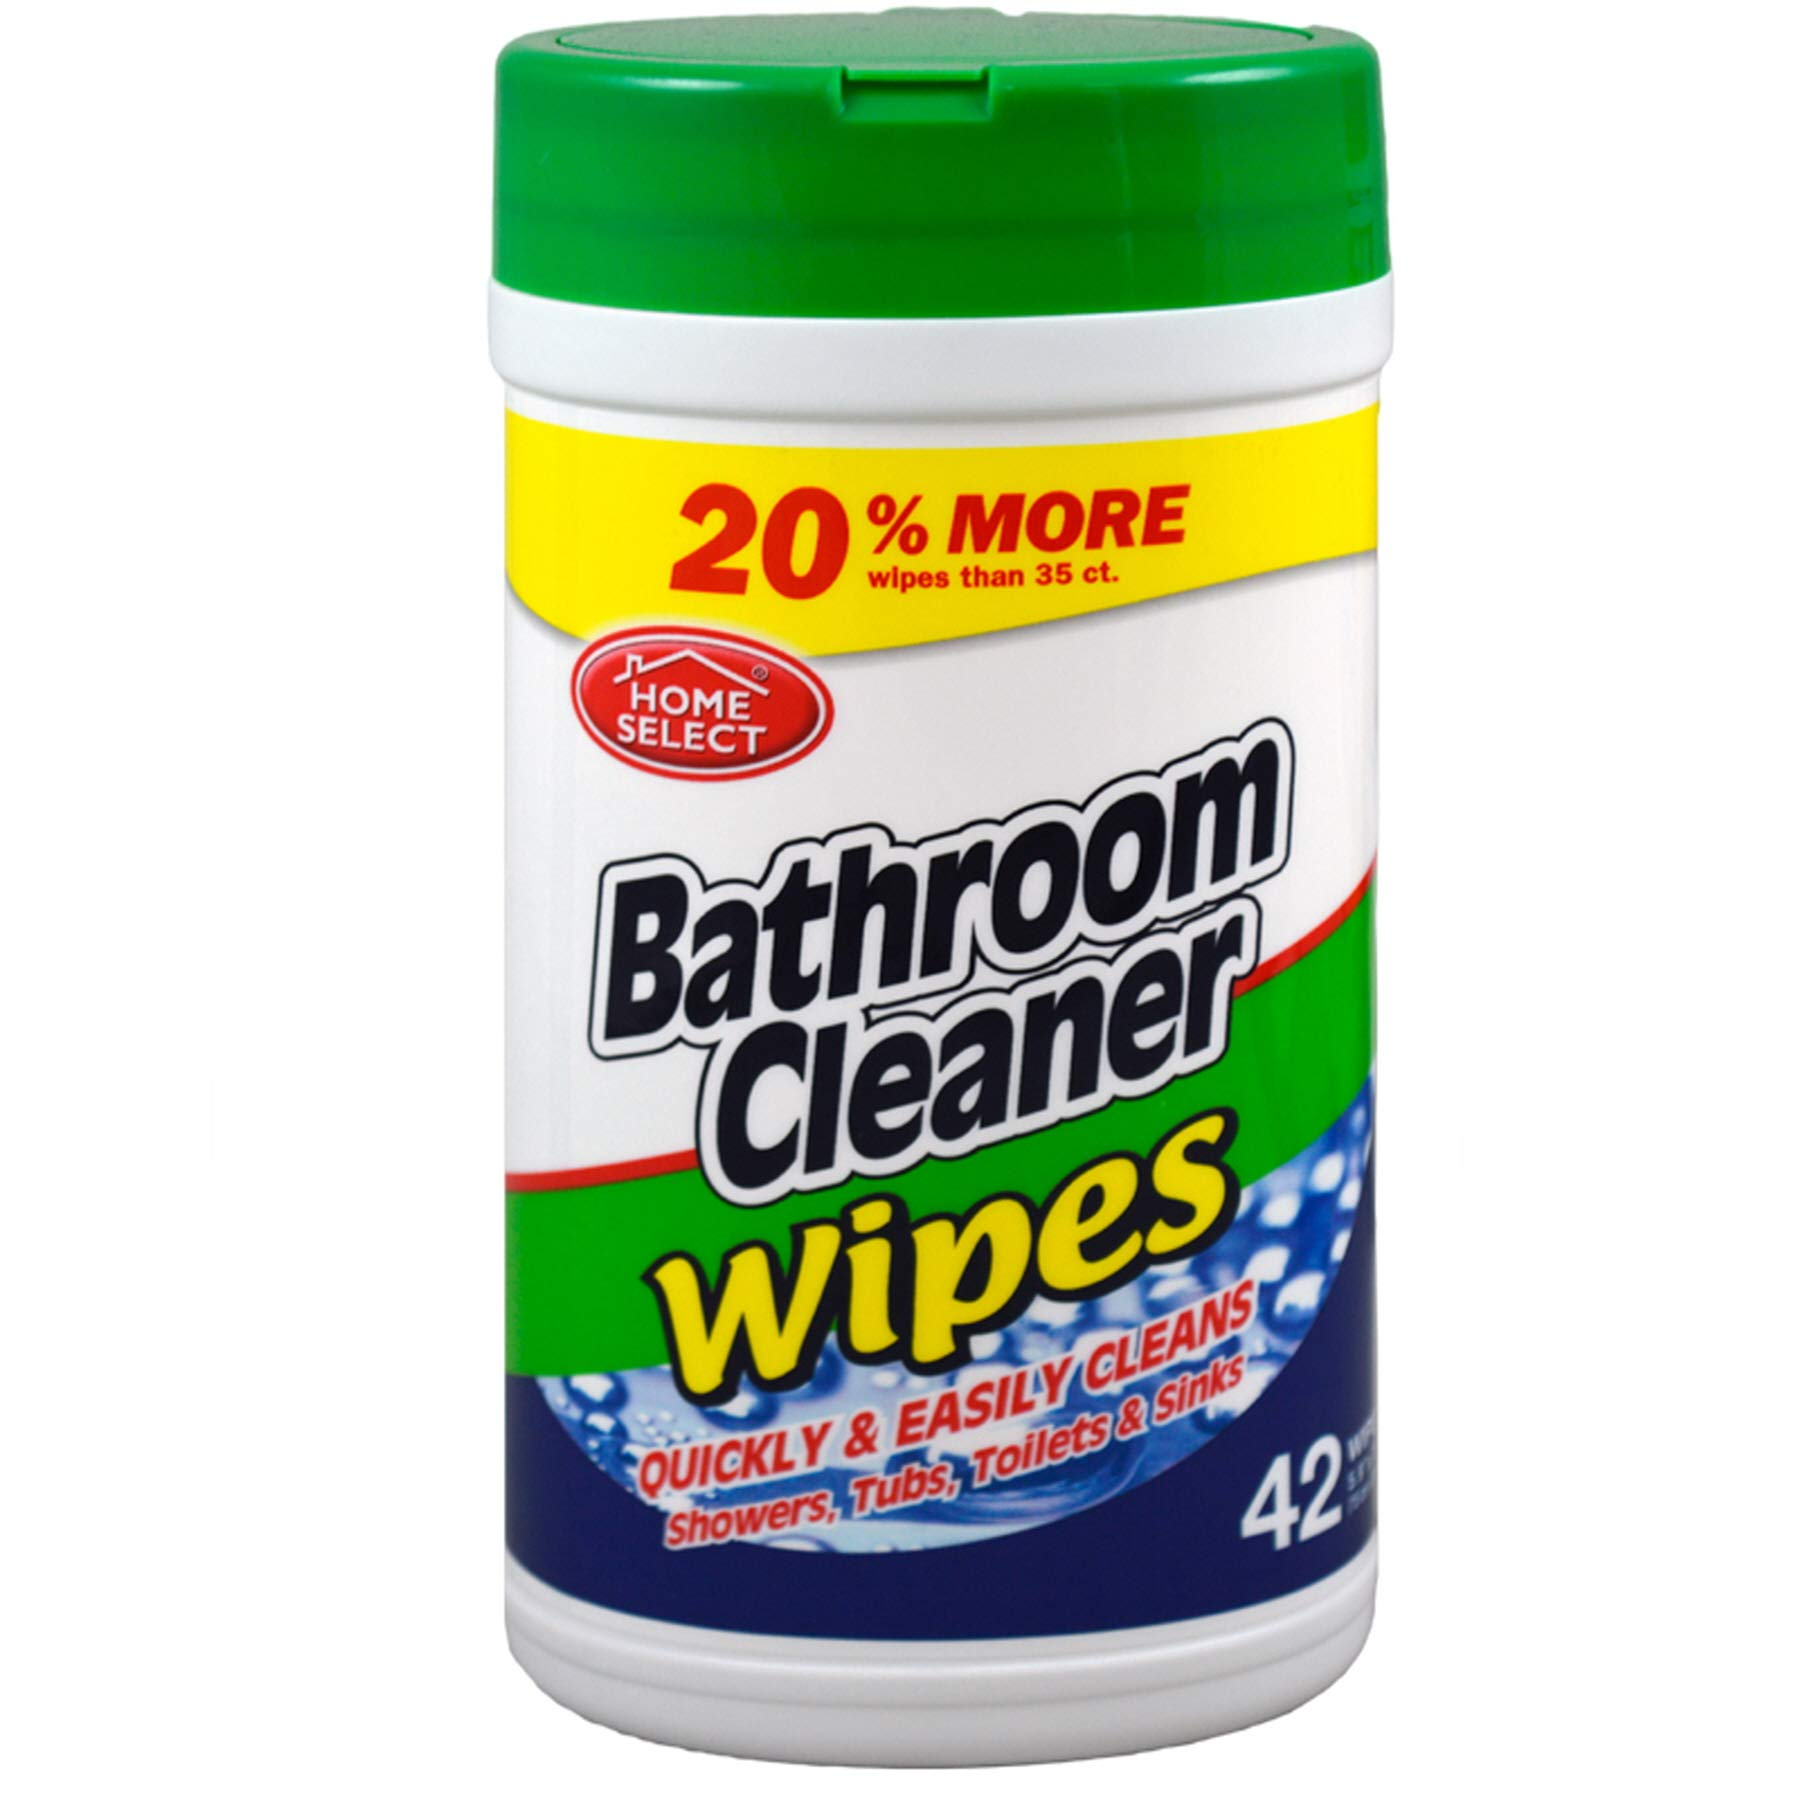 (Pack of 24, 1008 Ct) Home Select Bathroom Cleaner Wipe 42 Ct by Home Select Cleaner